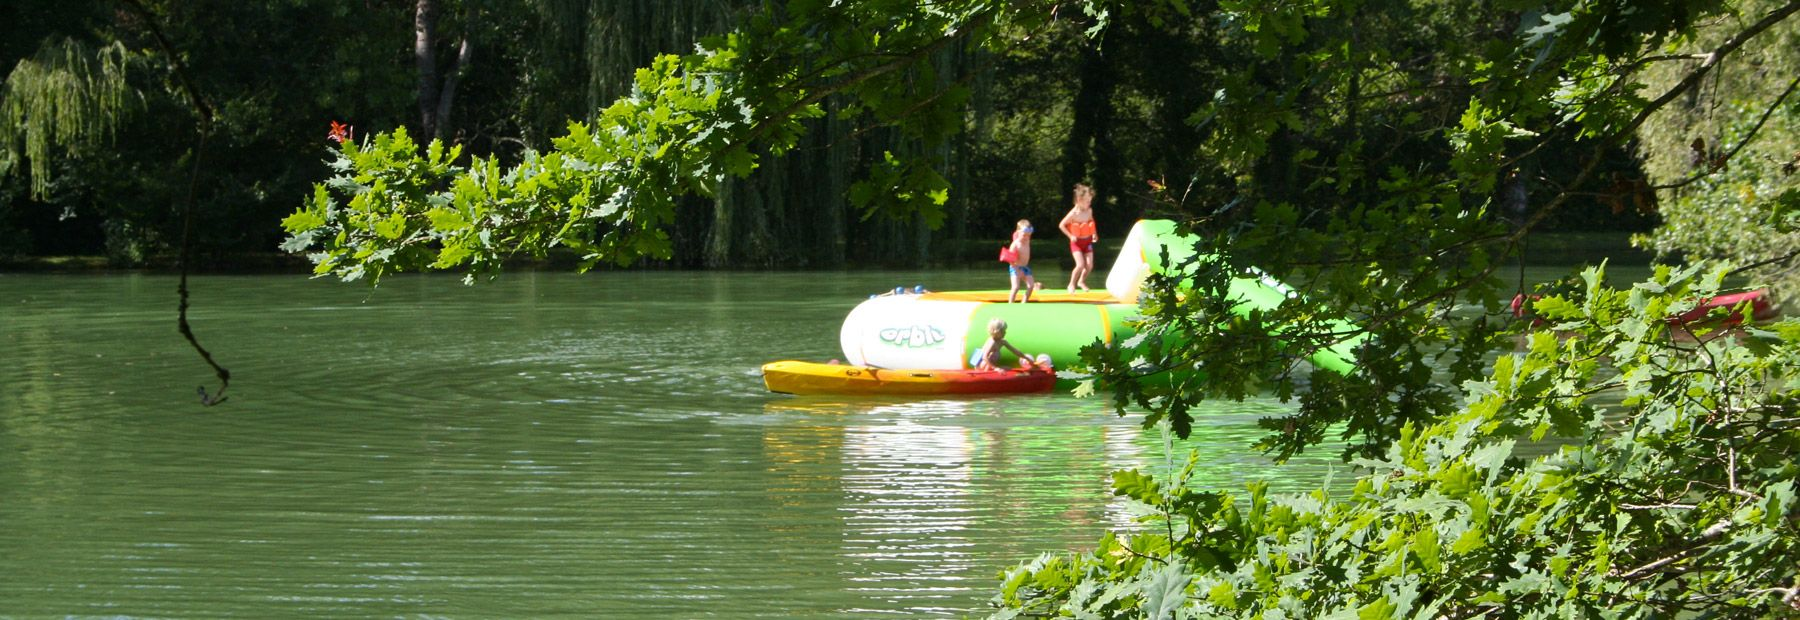 Camping dordogne p che tang cano lac les valades for Camping municipal dordogne avec piscine